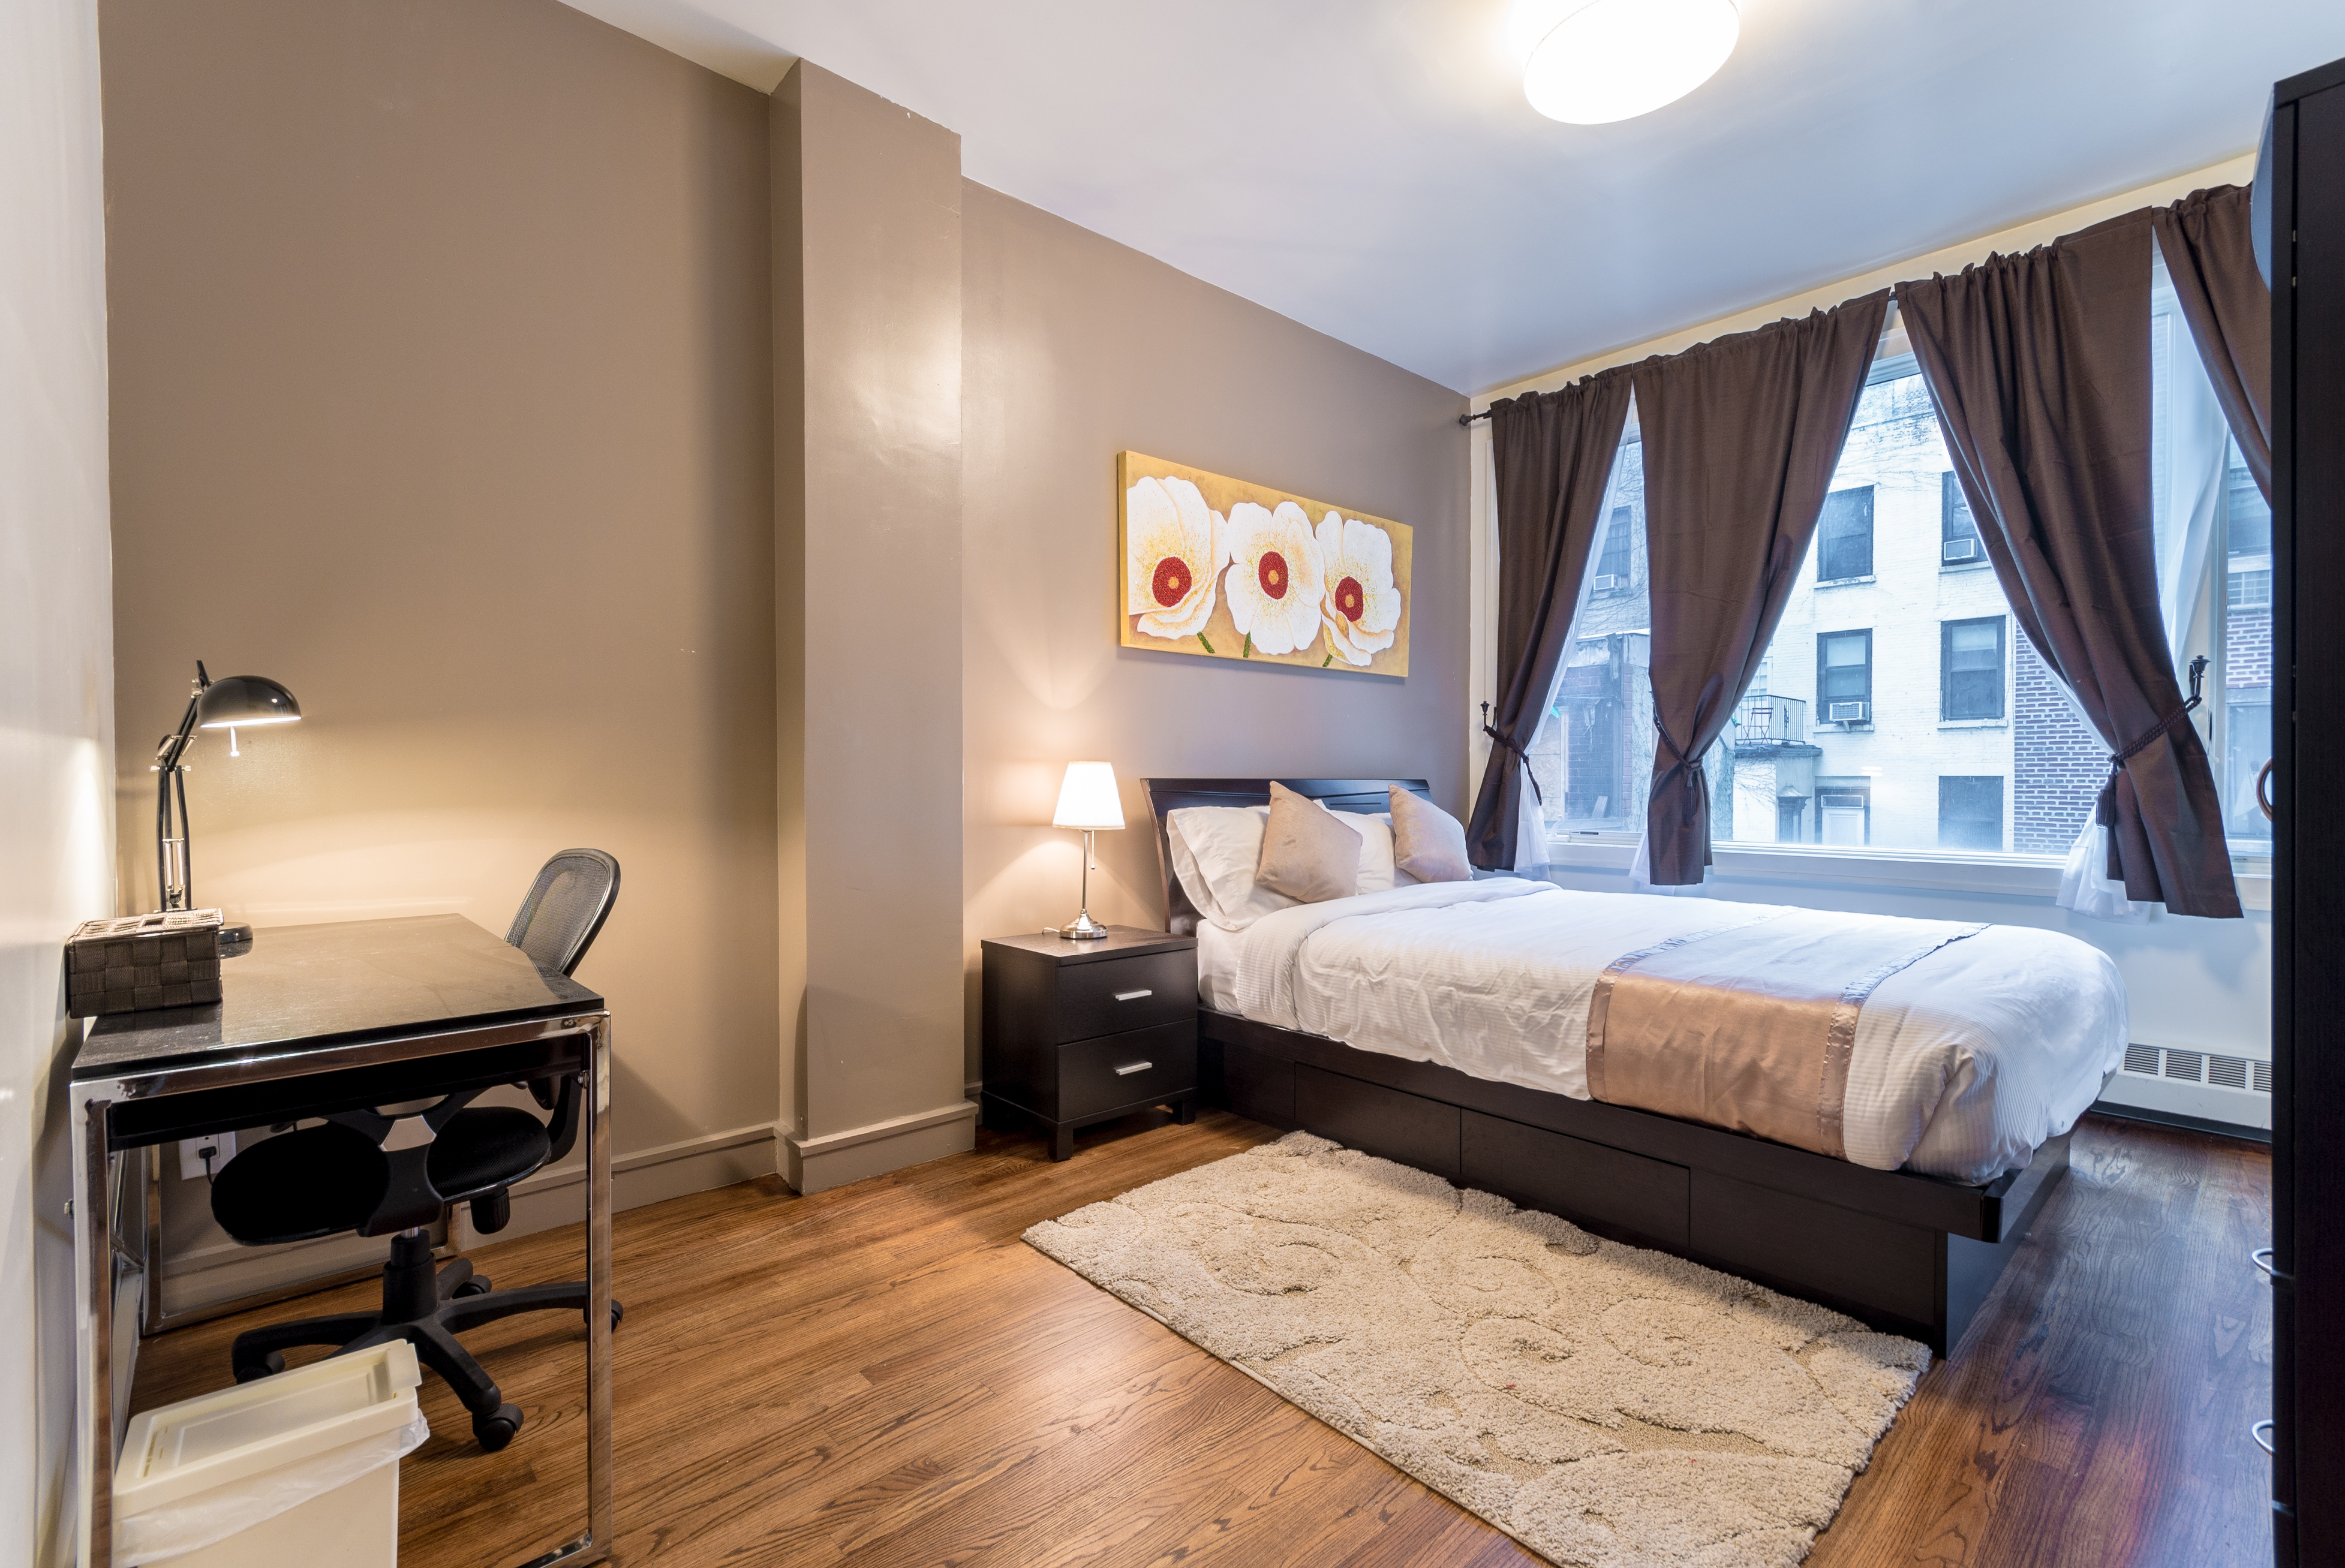 138 East 37th St, 3R - Murray Hill, New York